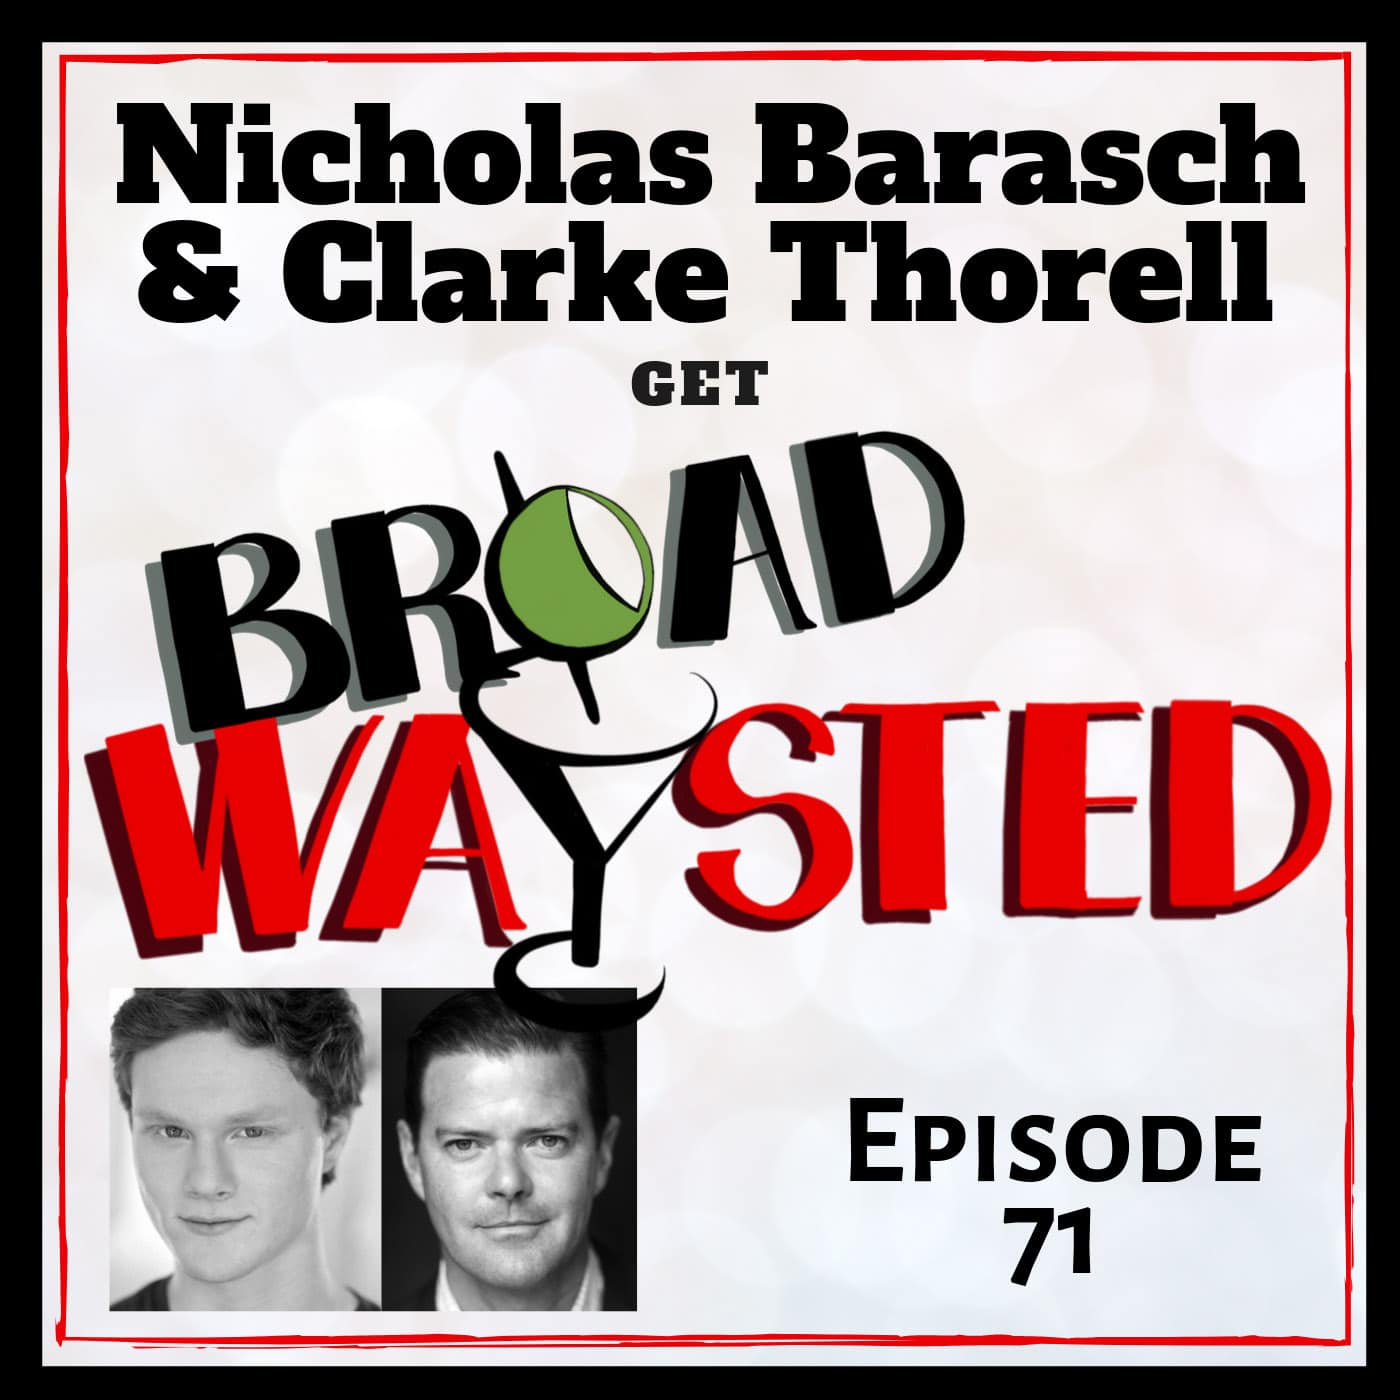 Broadwaysted Ep 71 Nicholas Barasch and Clarke Thorell